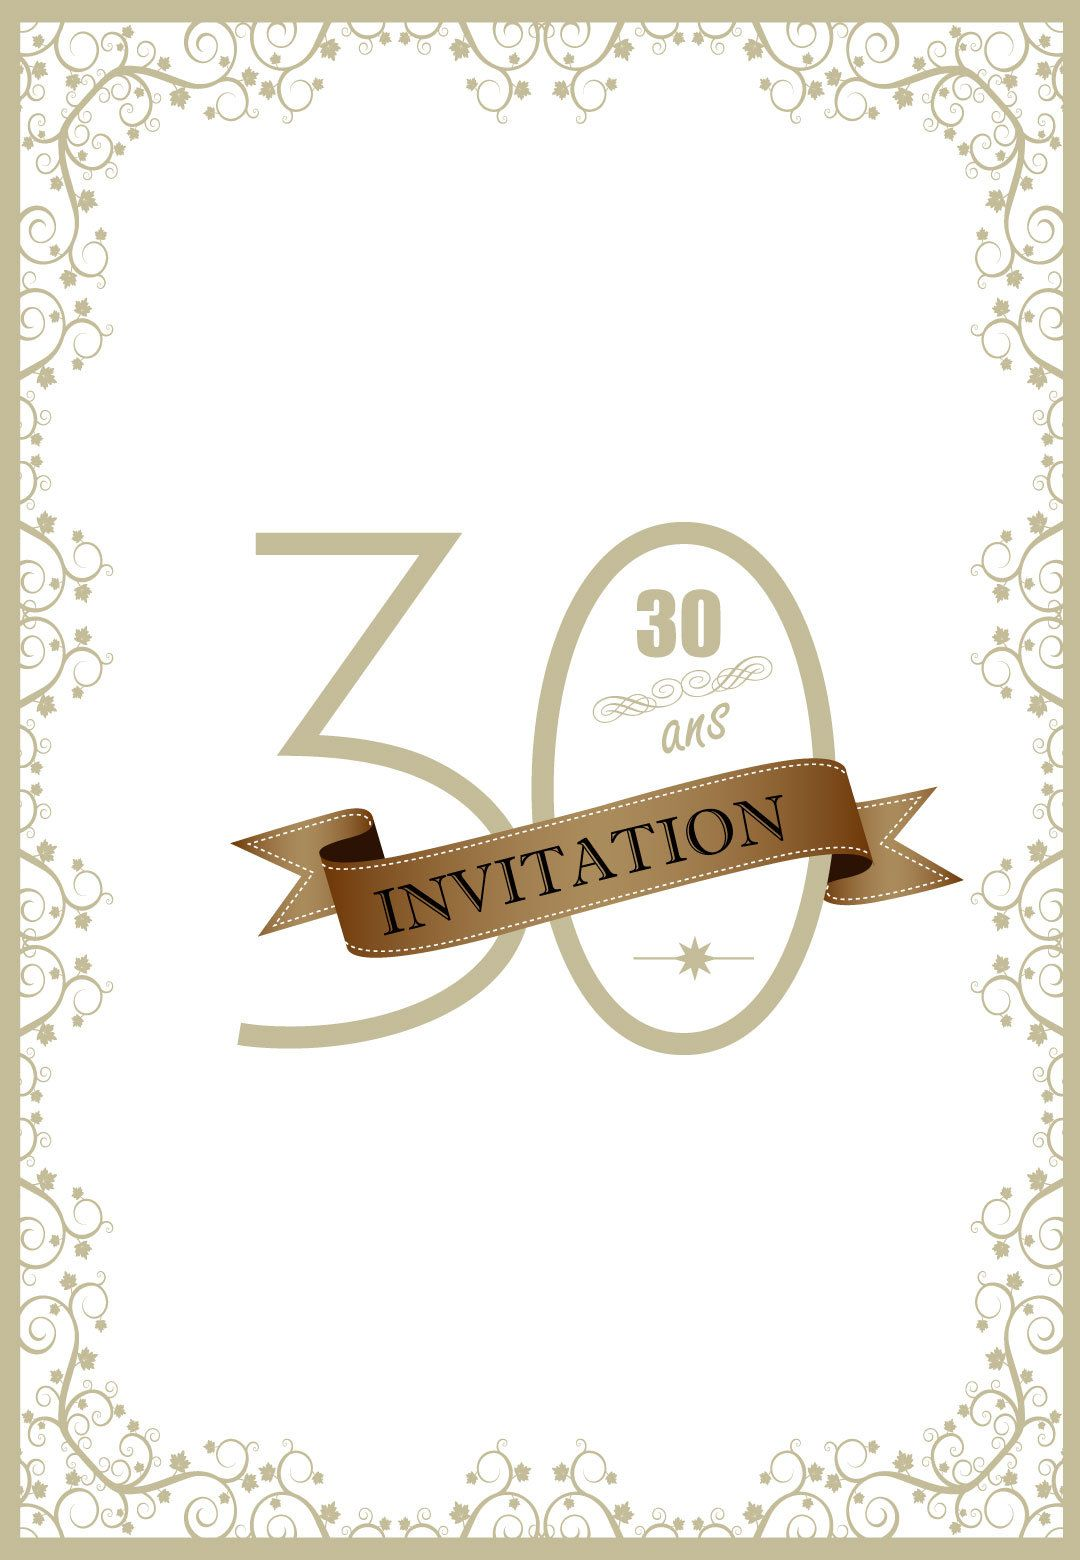 invitation anniversaire 30 ans style retro 123 cartes. Black Bedroom Furniture Sets. Home Design Ideas